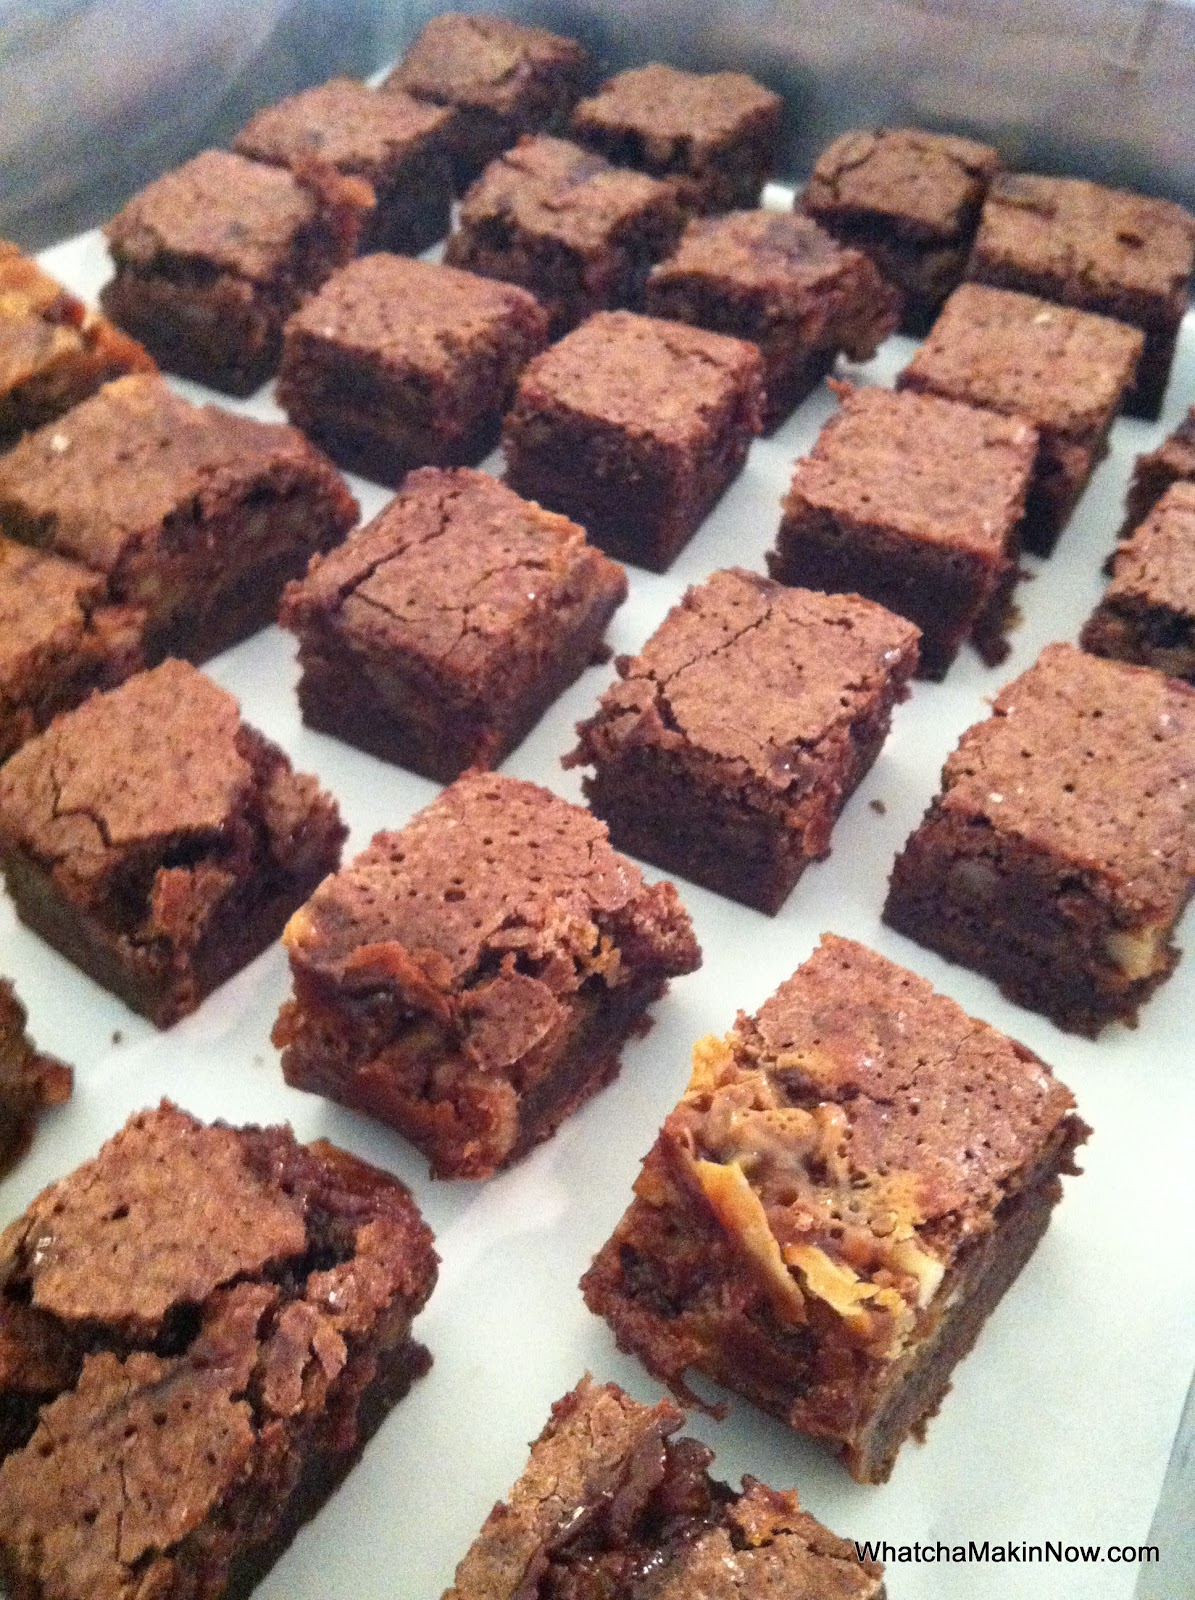 Whatcha Makin' Now?: Caramel & Hot Fudge Pecan Brownies